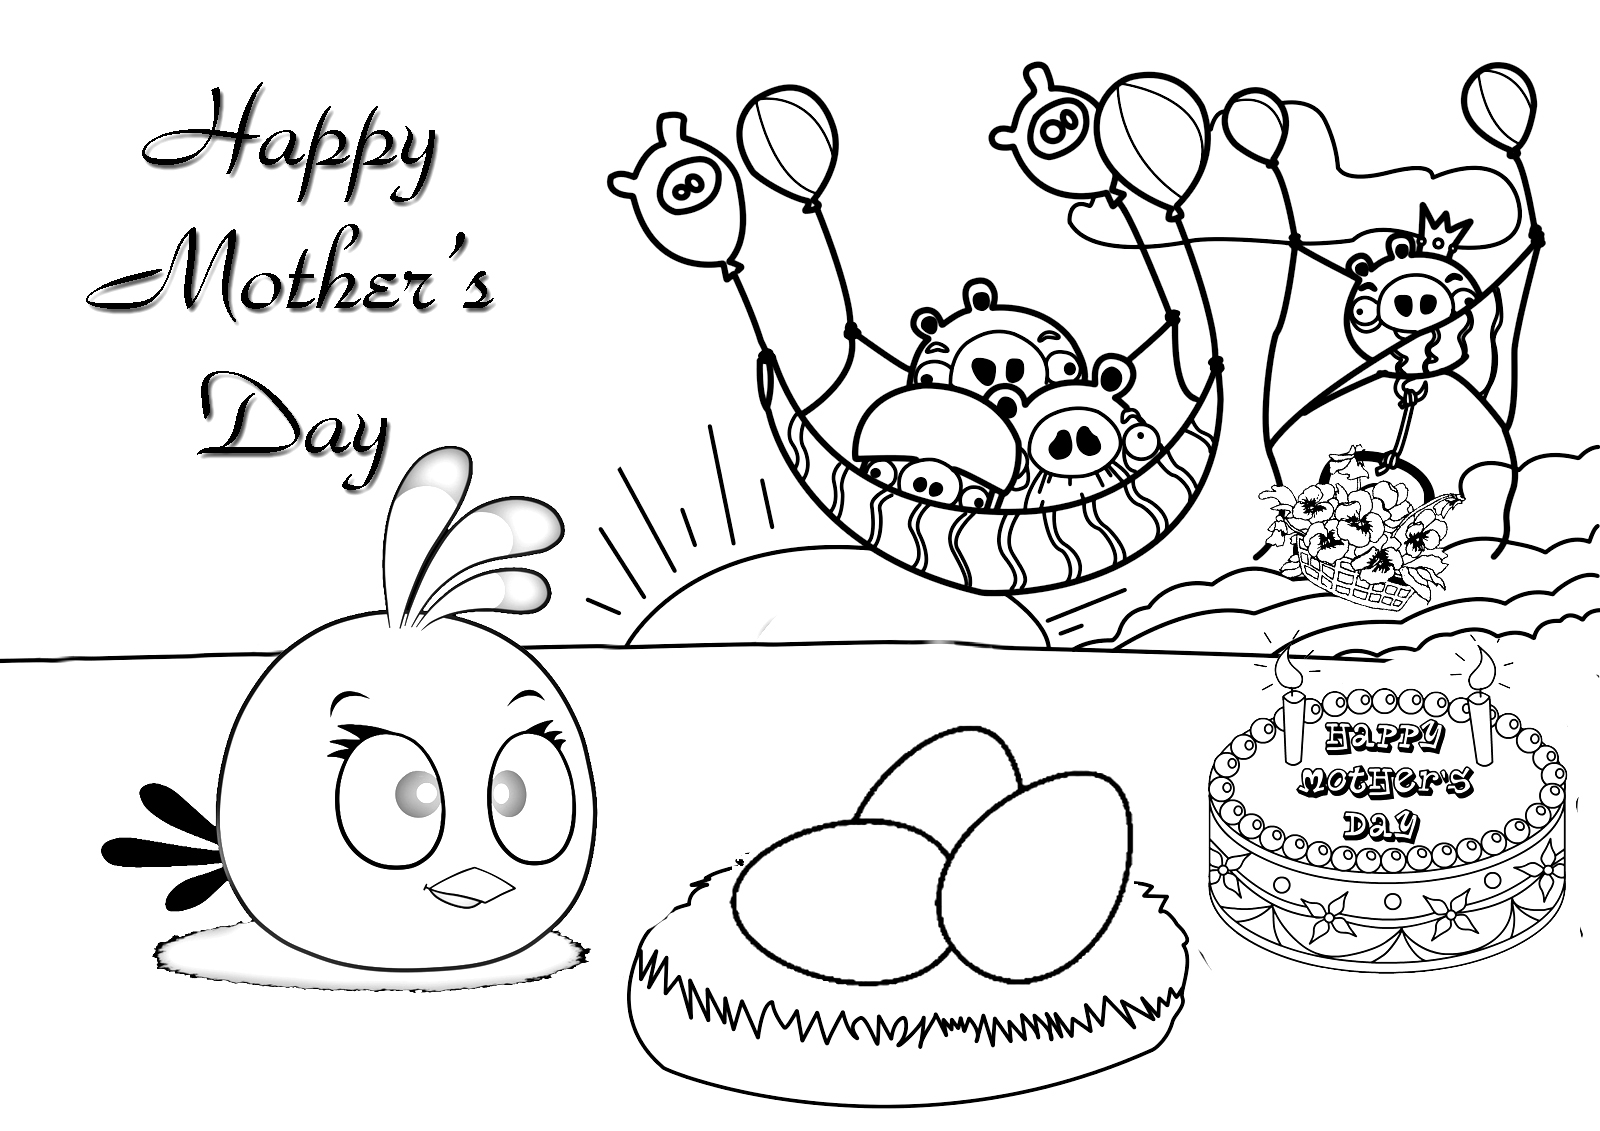 free mothers day coloring pages - Free Mothers Day Coloring Pages